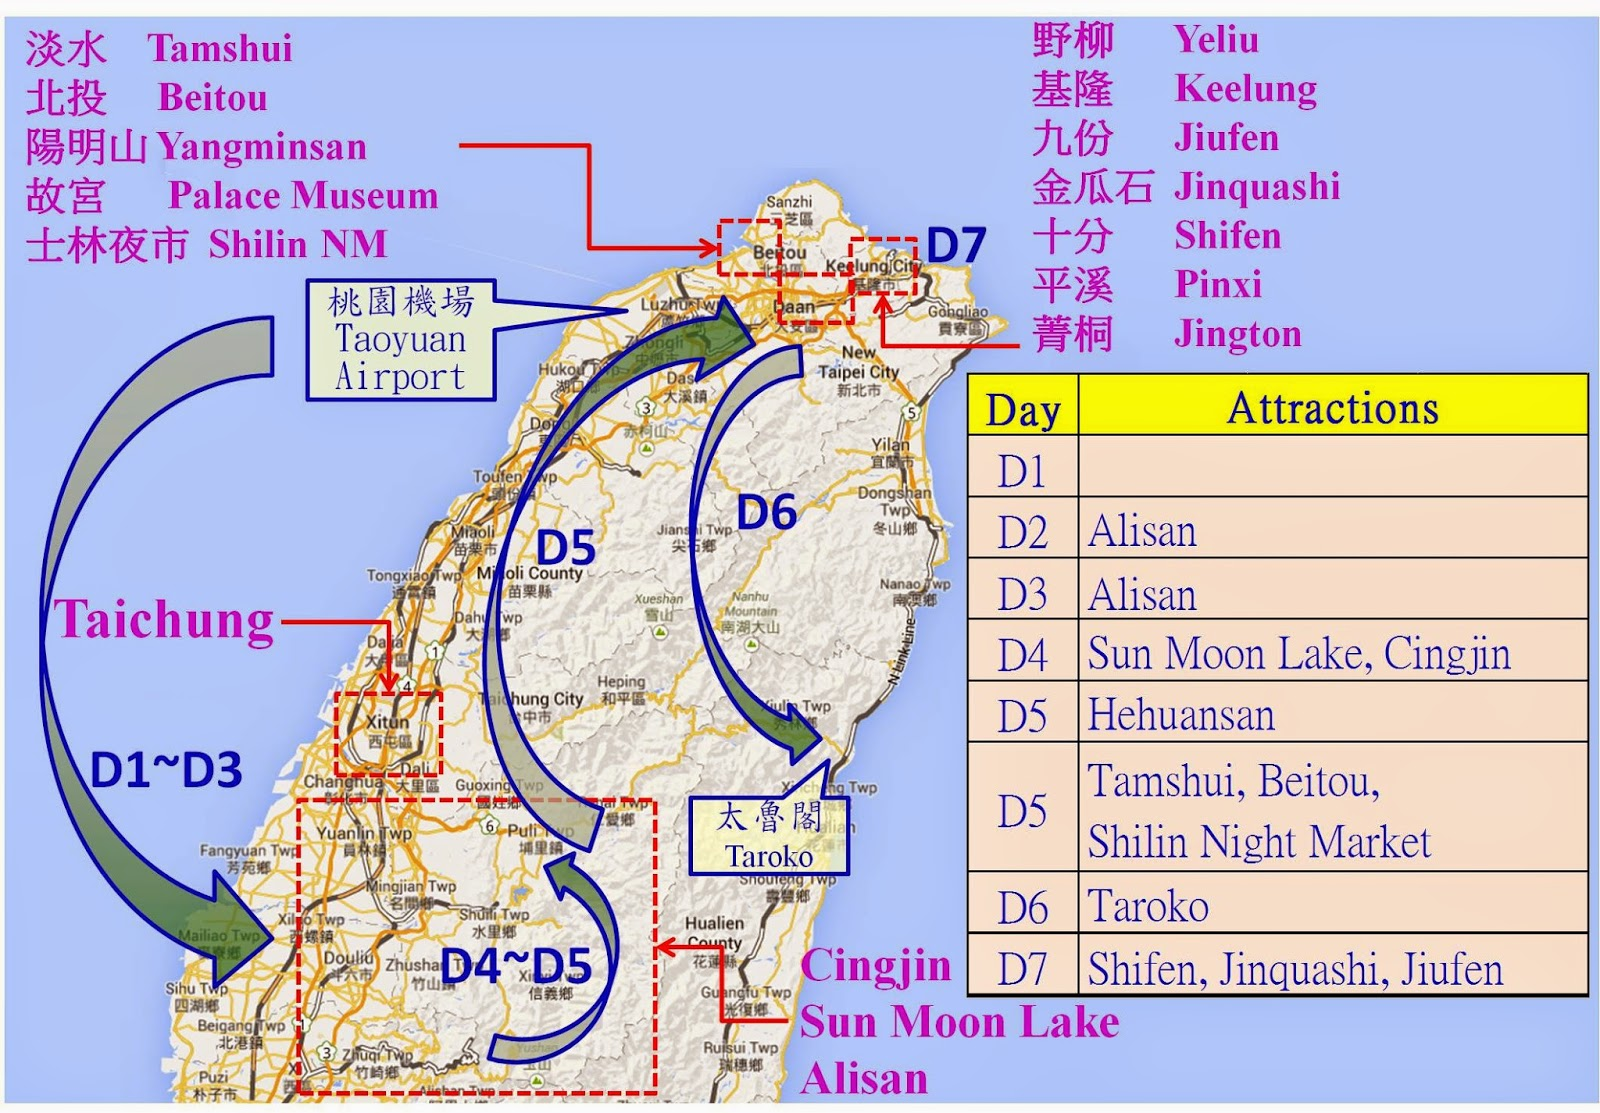 Taiwan itinerary examples travel taiwan remember the following examples just show how to make a smooth itinerary plan some information may be out of day you should check the timetable and sciox Choice Image